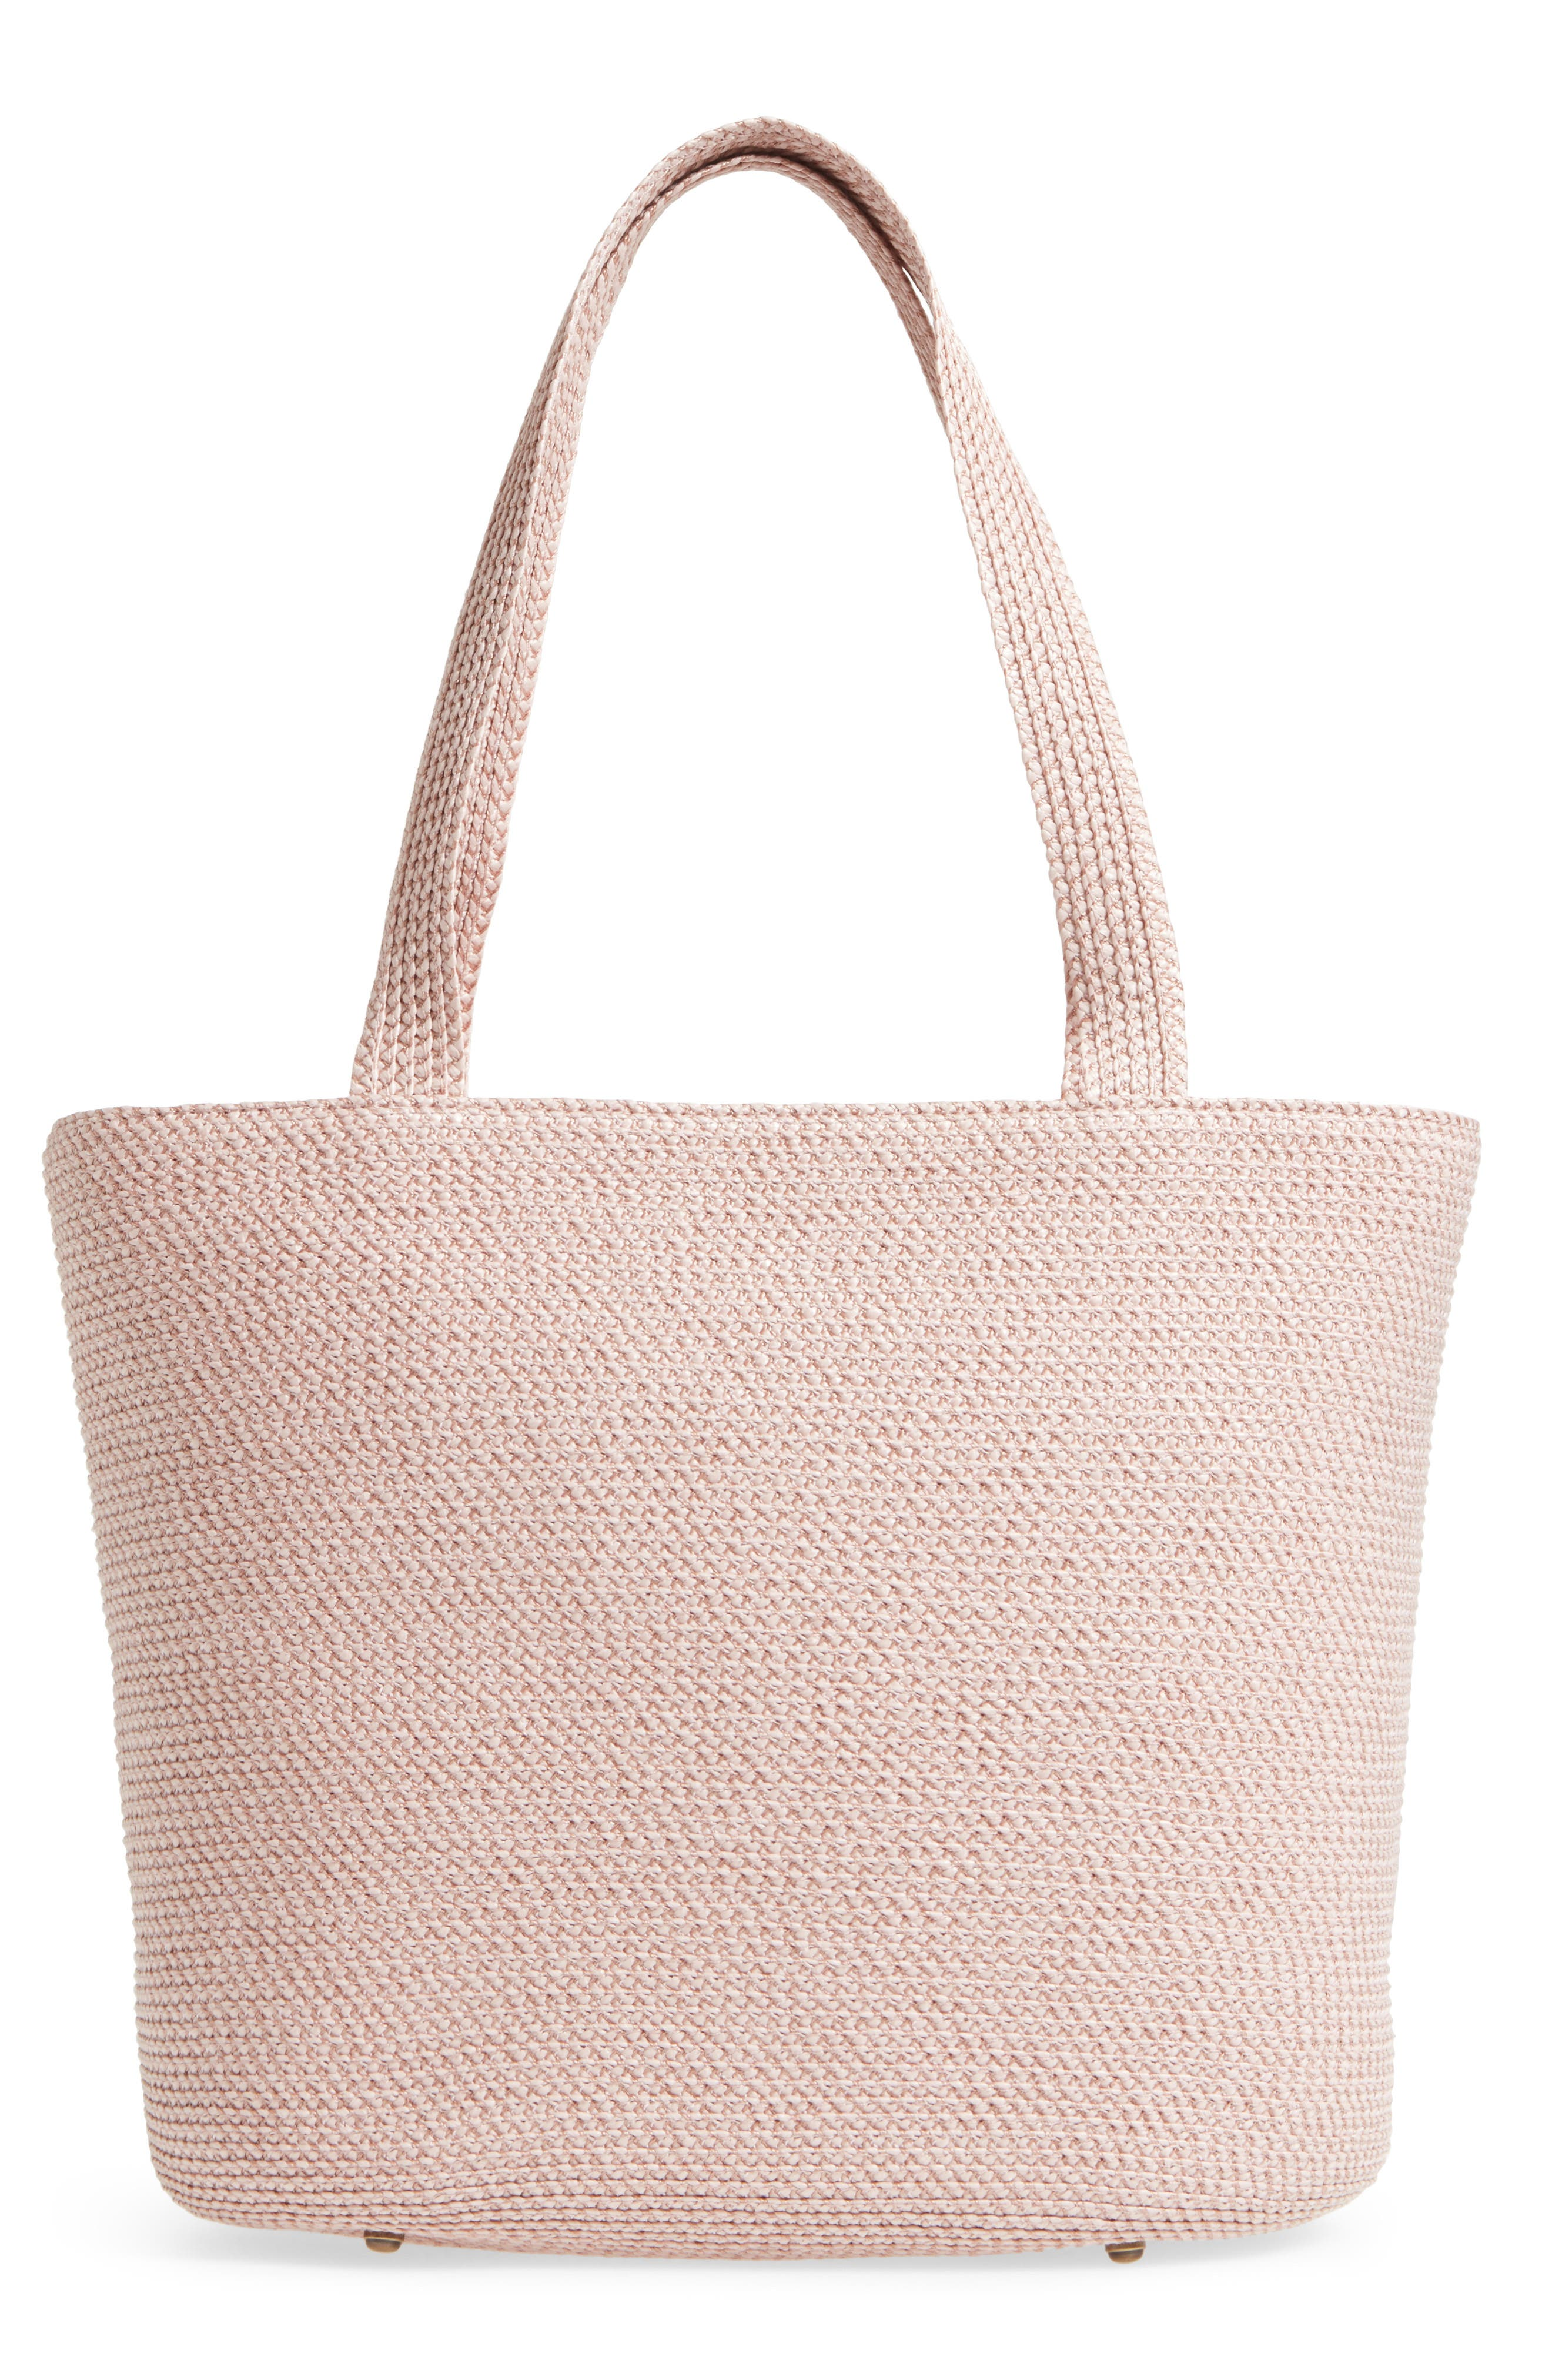 Squishee<sup>®</sup> Tote,                             Alternate thumbnail 3, color,                             BLUSH